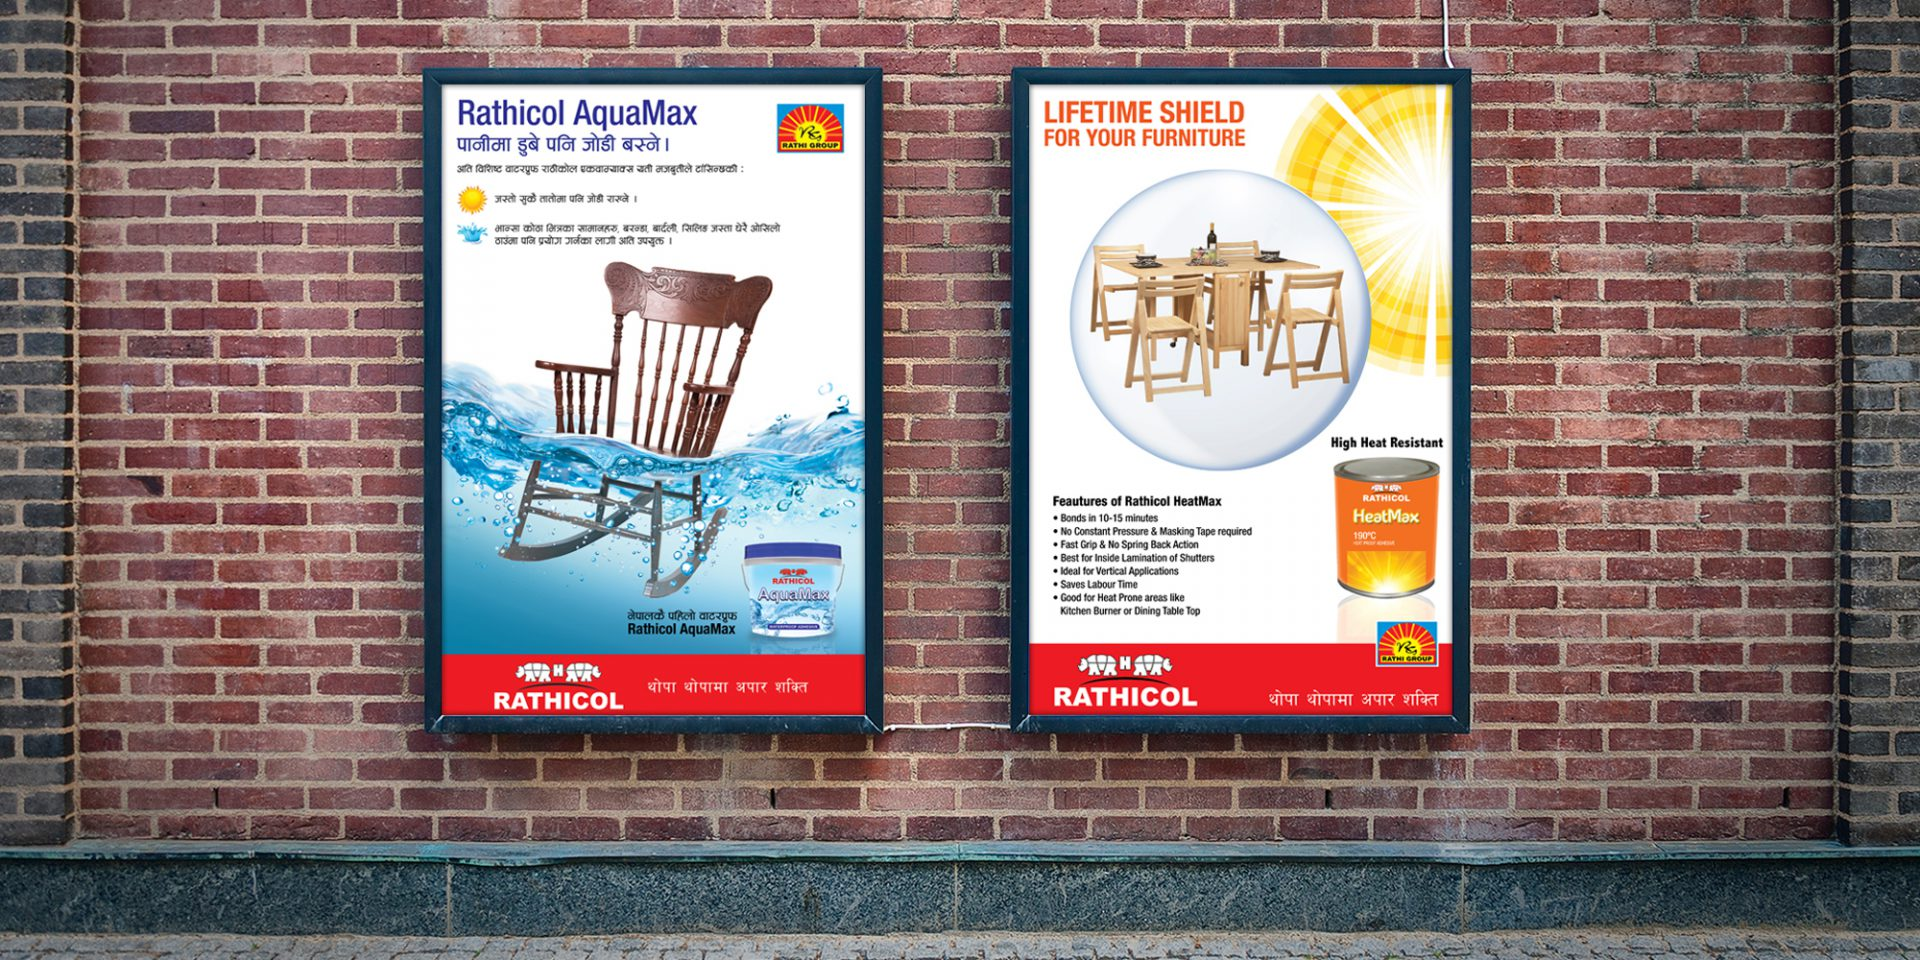 Rathicol Waterproof and Heatproof Adhesive Poster Designs